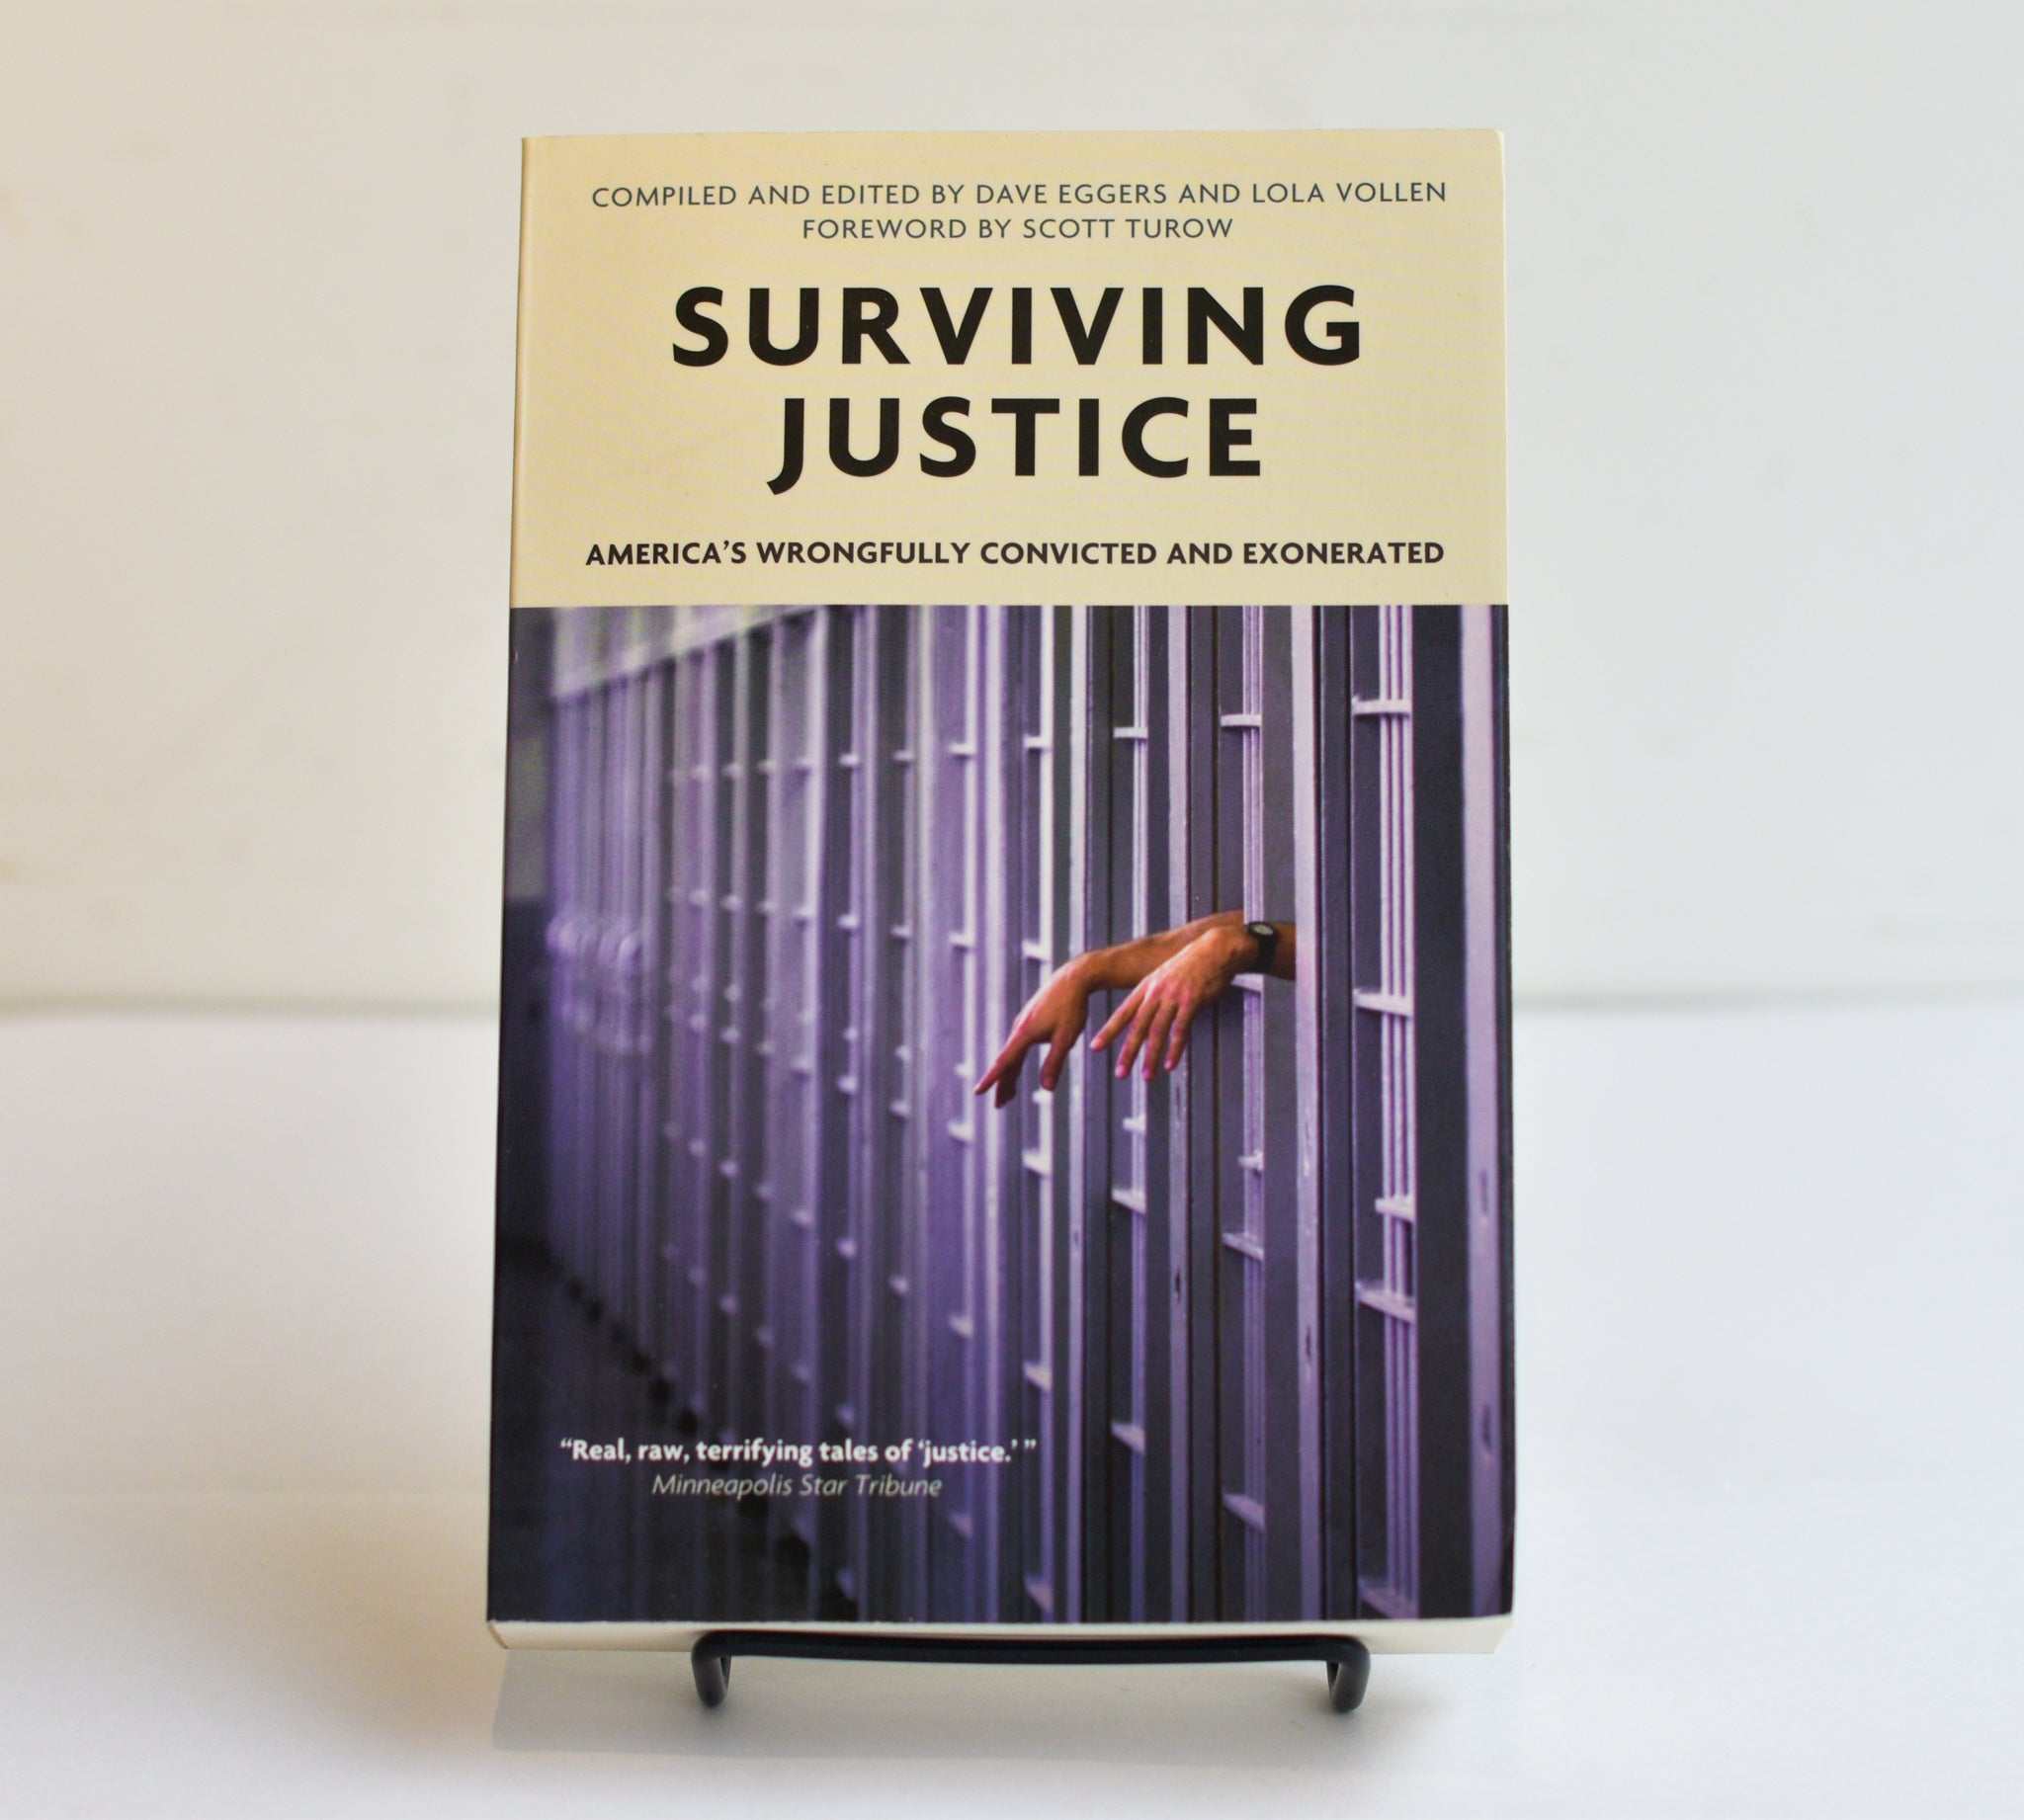 Surviving Justice by Dave Eggers and Lola Vollen